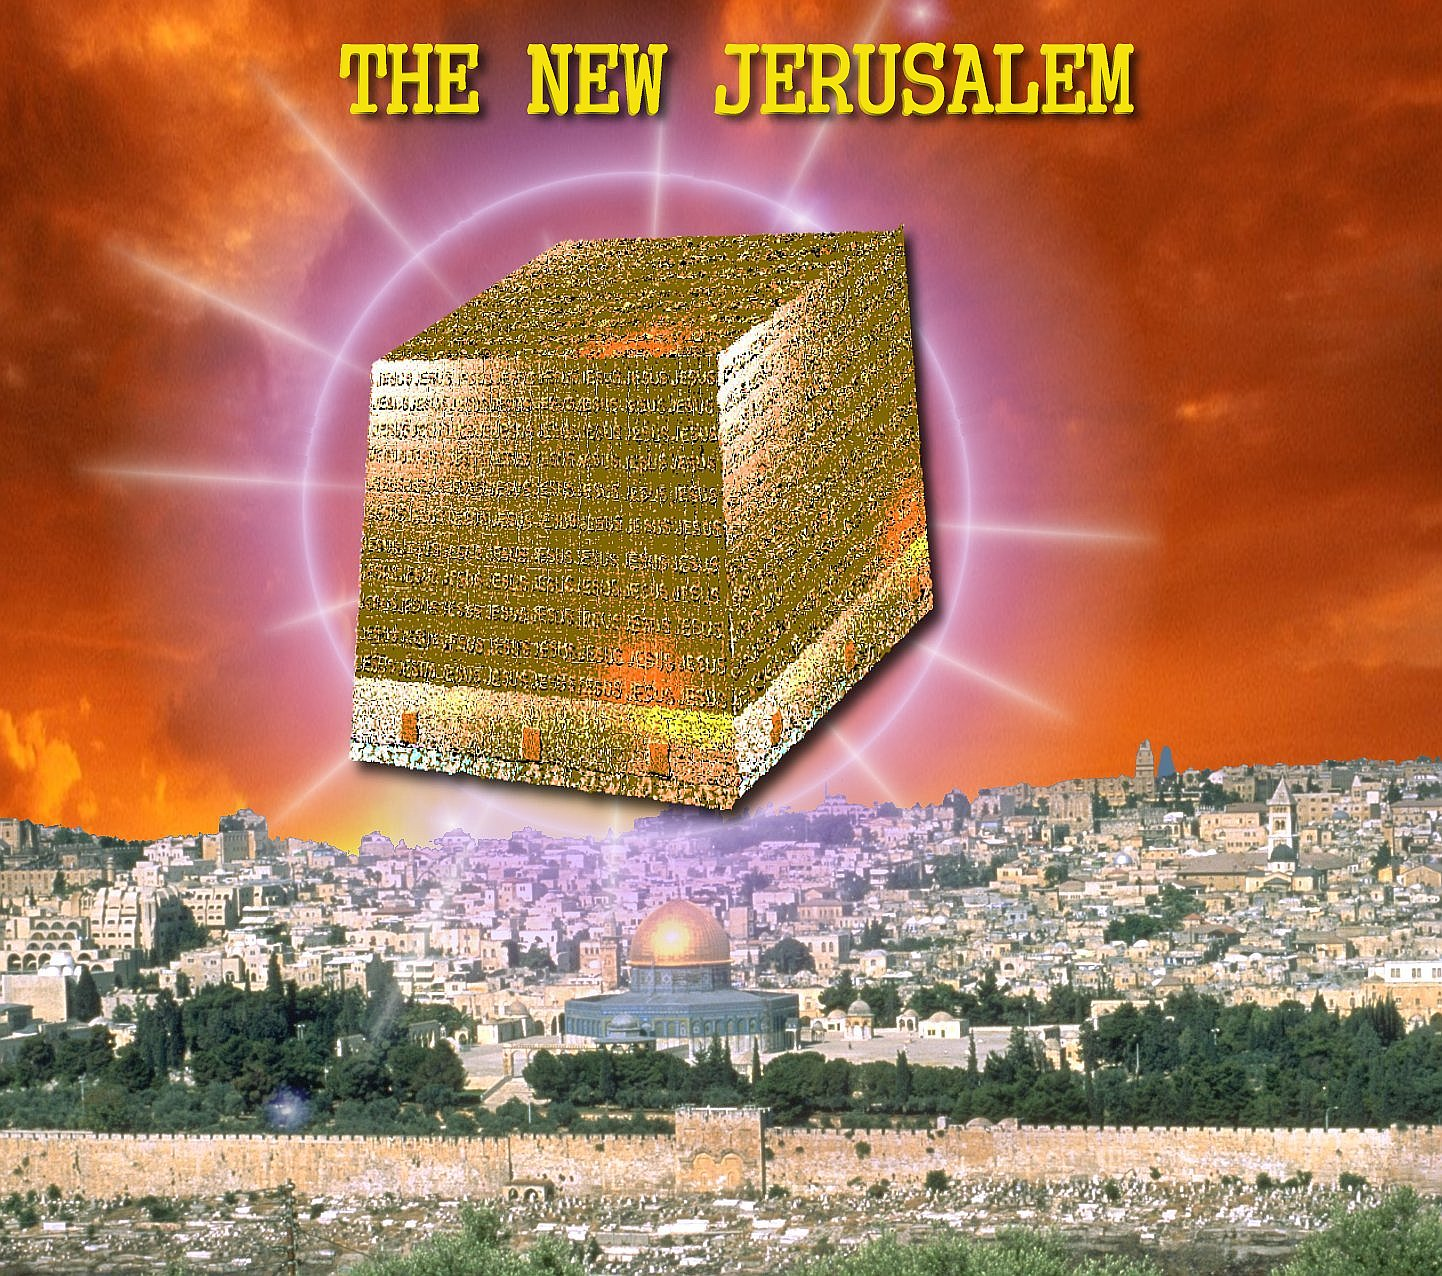 Religious significance of Jerusalem